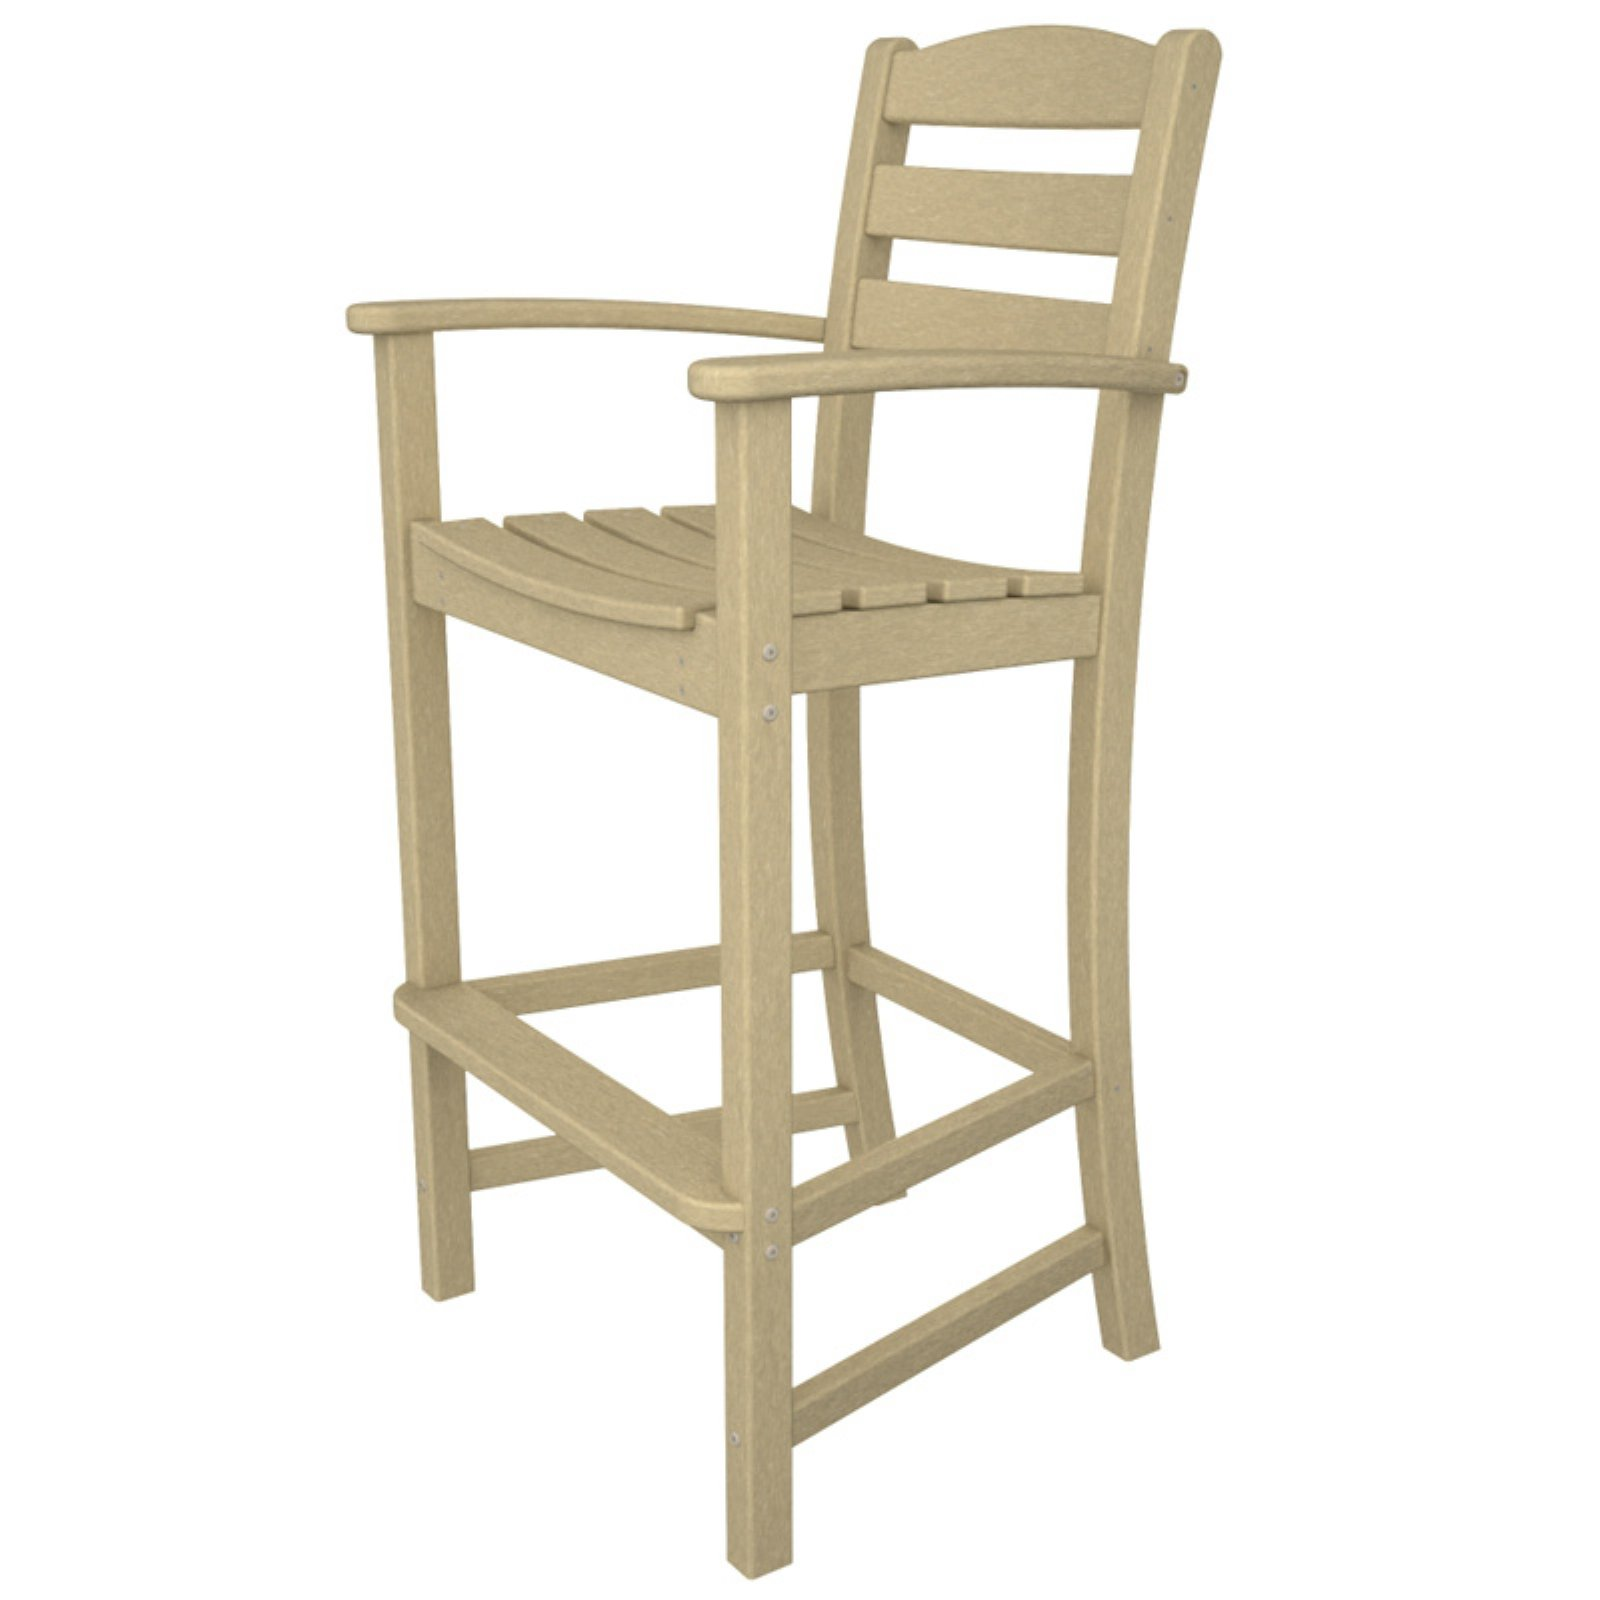 POLYWOOD® La Casa Cafe Recycled Plastic Bar Height Arm Chair